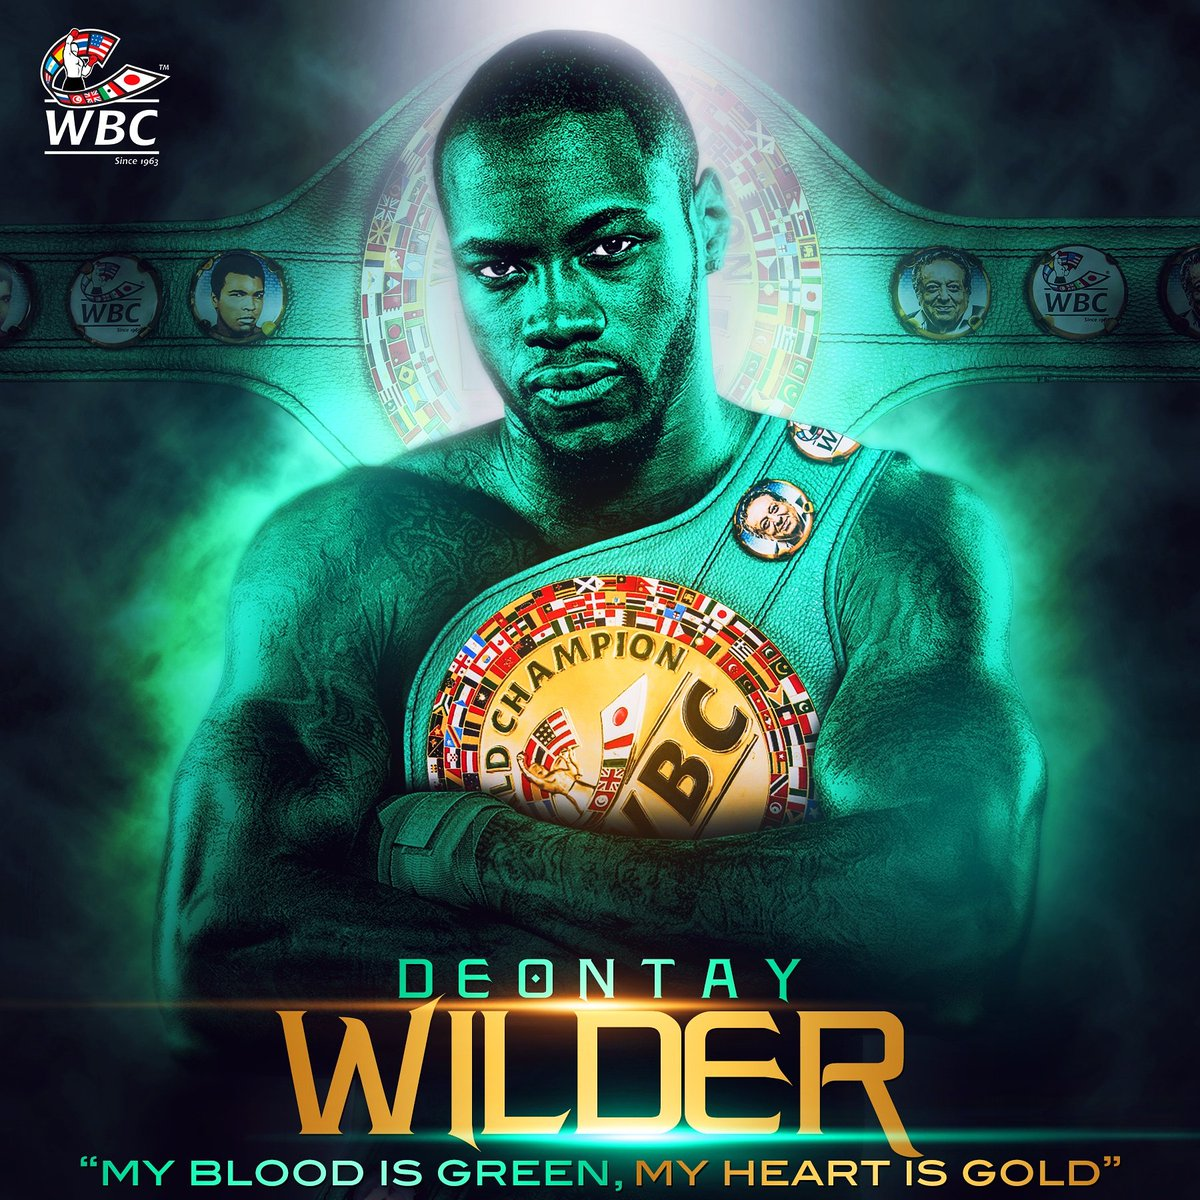 Deontay Wilder. (Image credit World Boxing Council - @WBCBoxing)